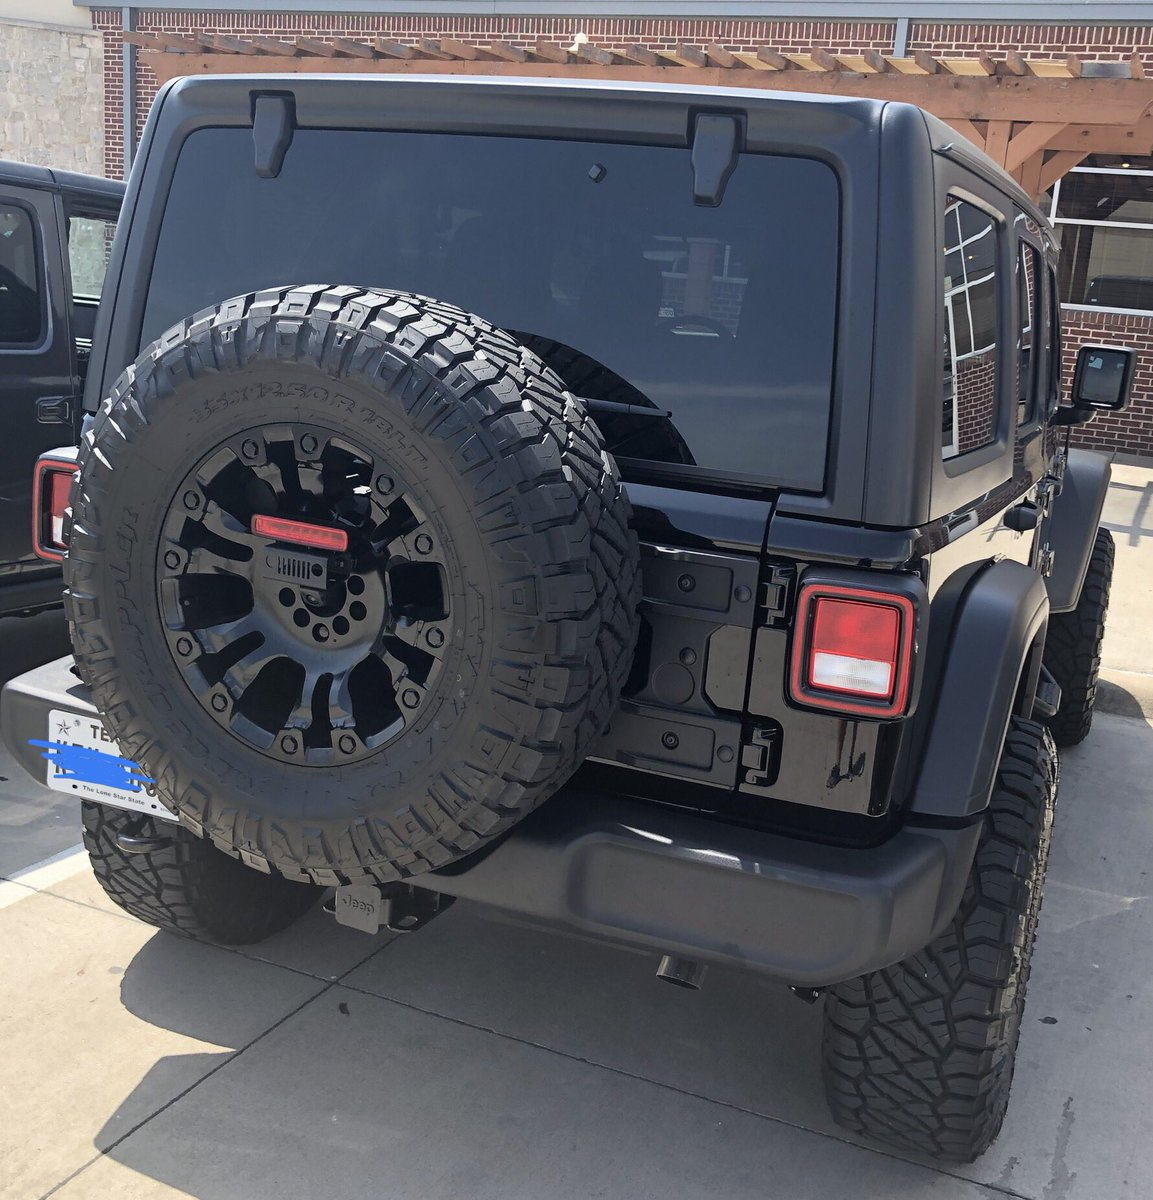 2018 JLU With 2 Mopar Lift Fuel Wheels And 35 Tires Jeprapp Jeep Offroad Lifted 4x4